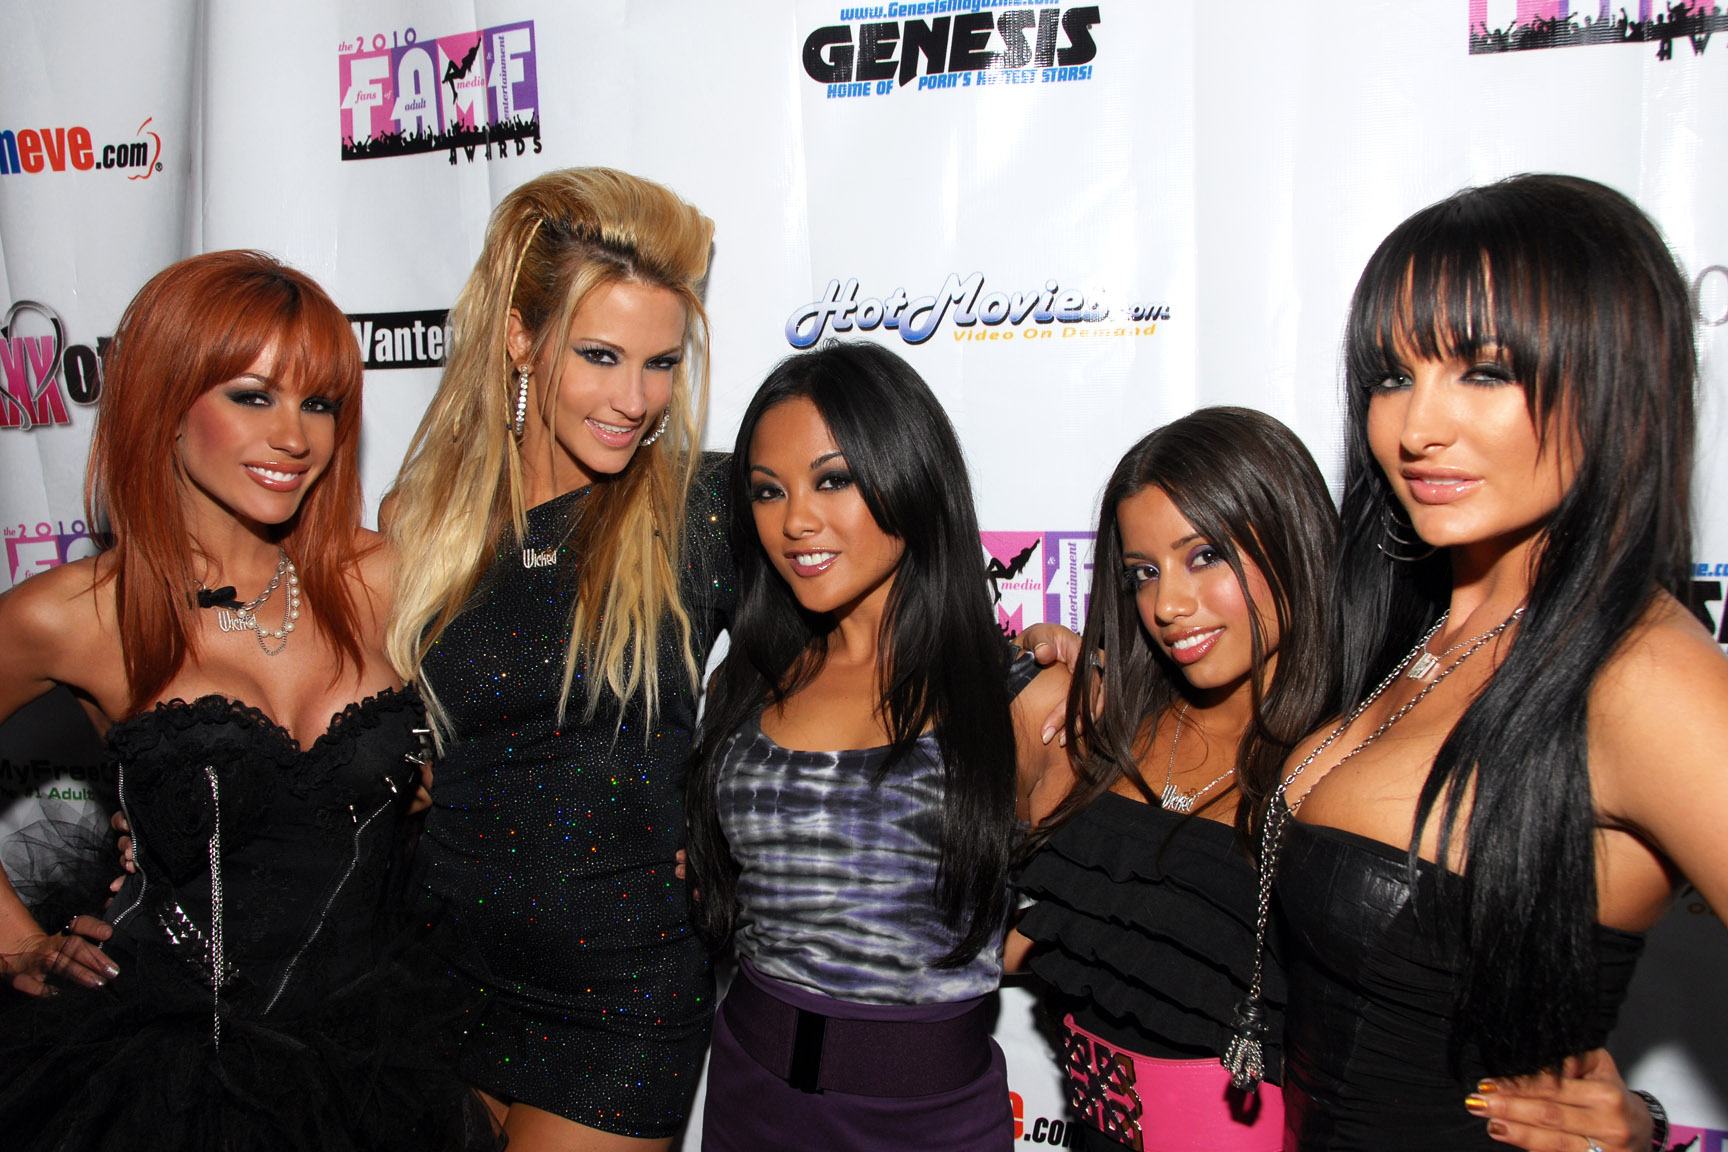 Filewicked Contract Girls 2010 Jpg